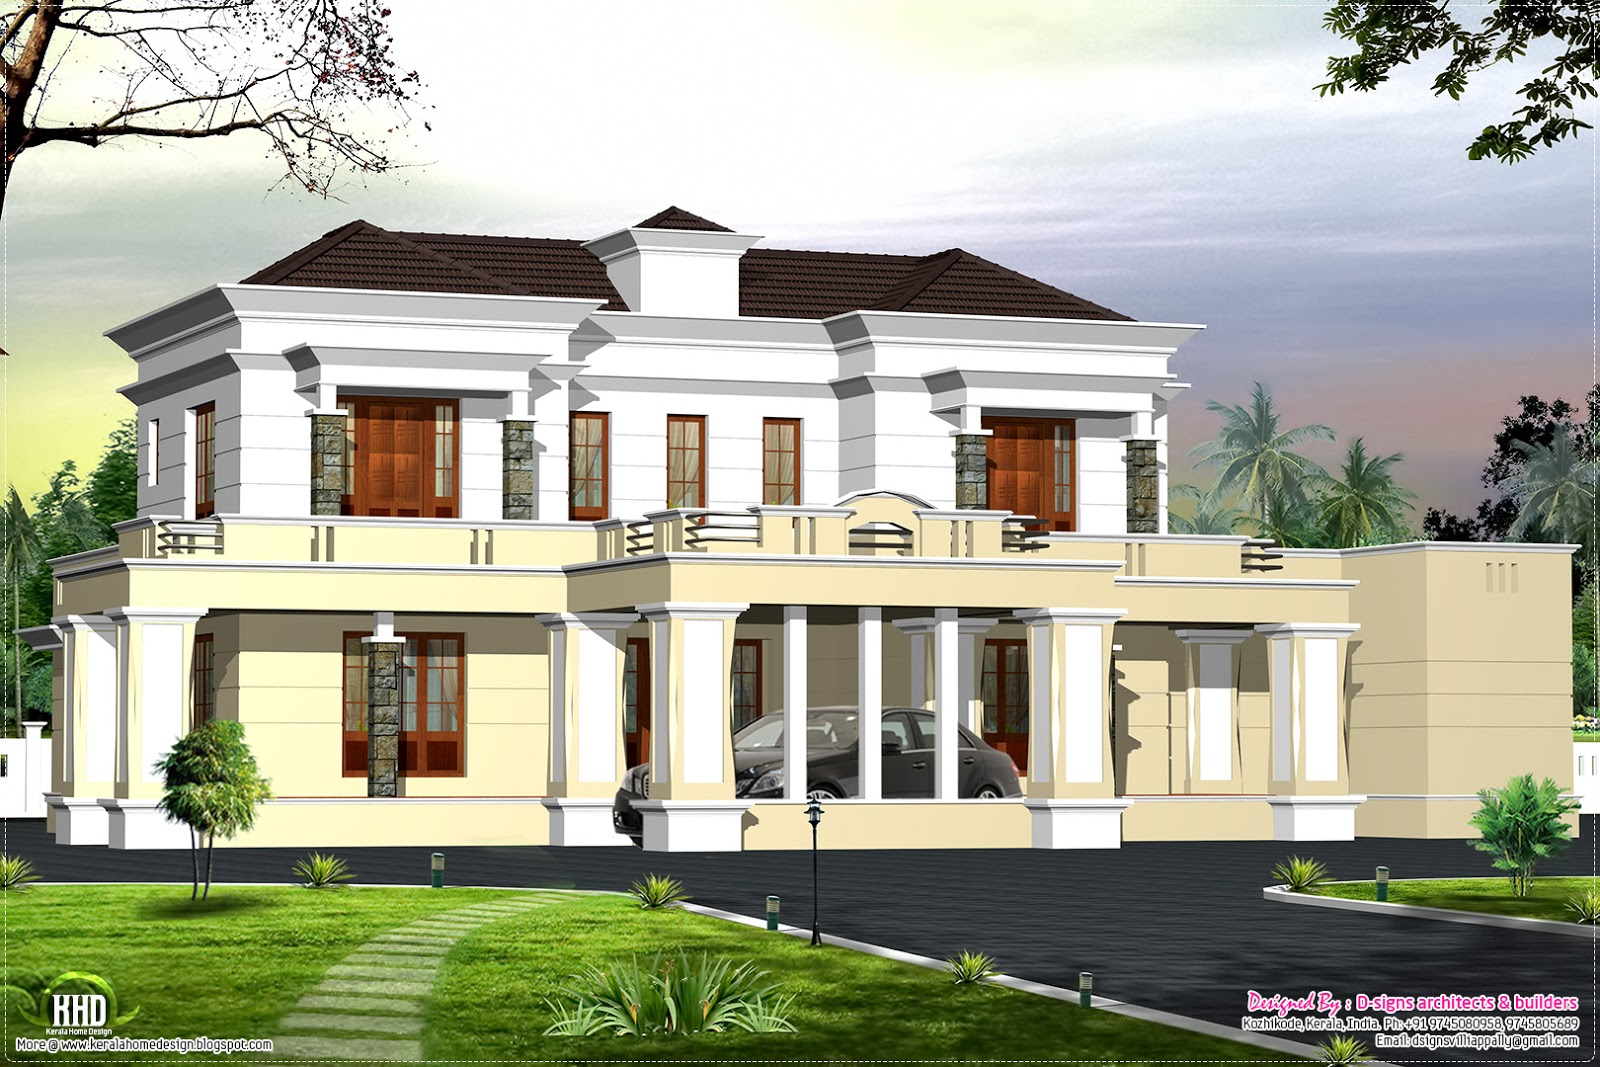 Victorian style luxury home design kerala home design for Luxury home designers